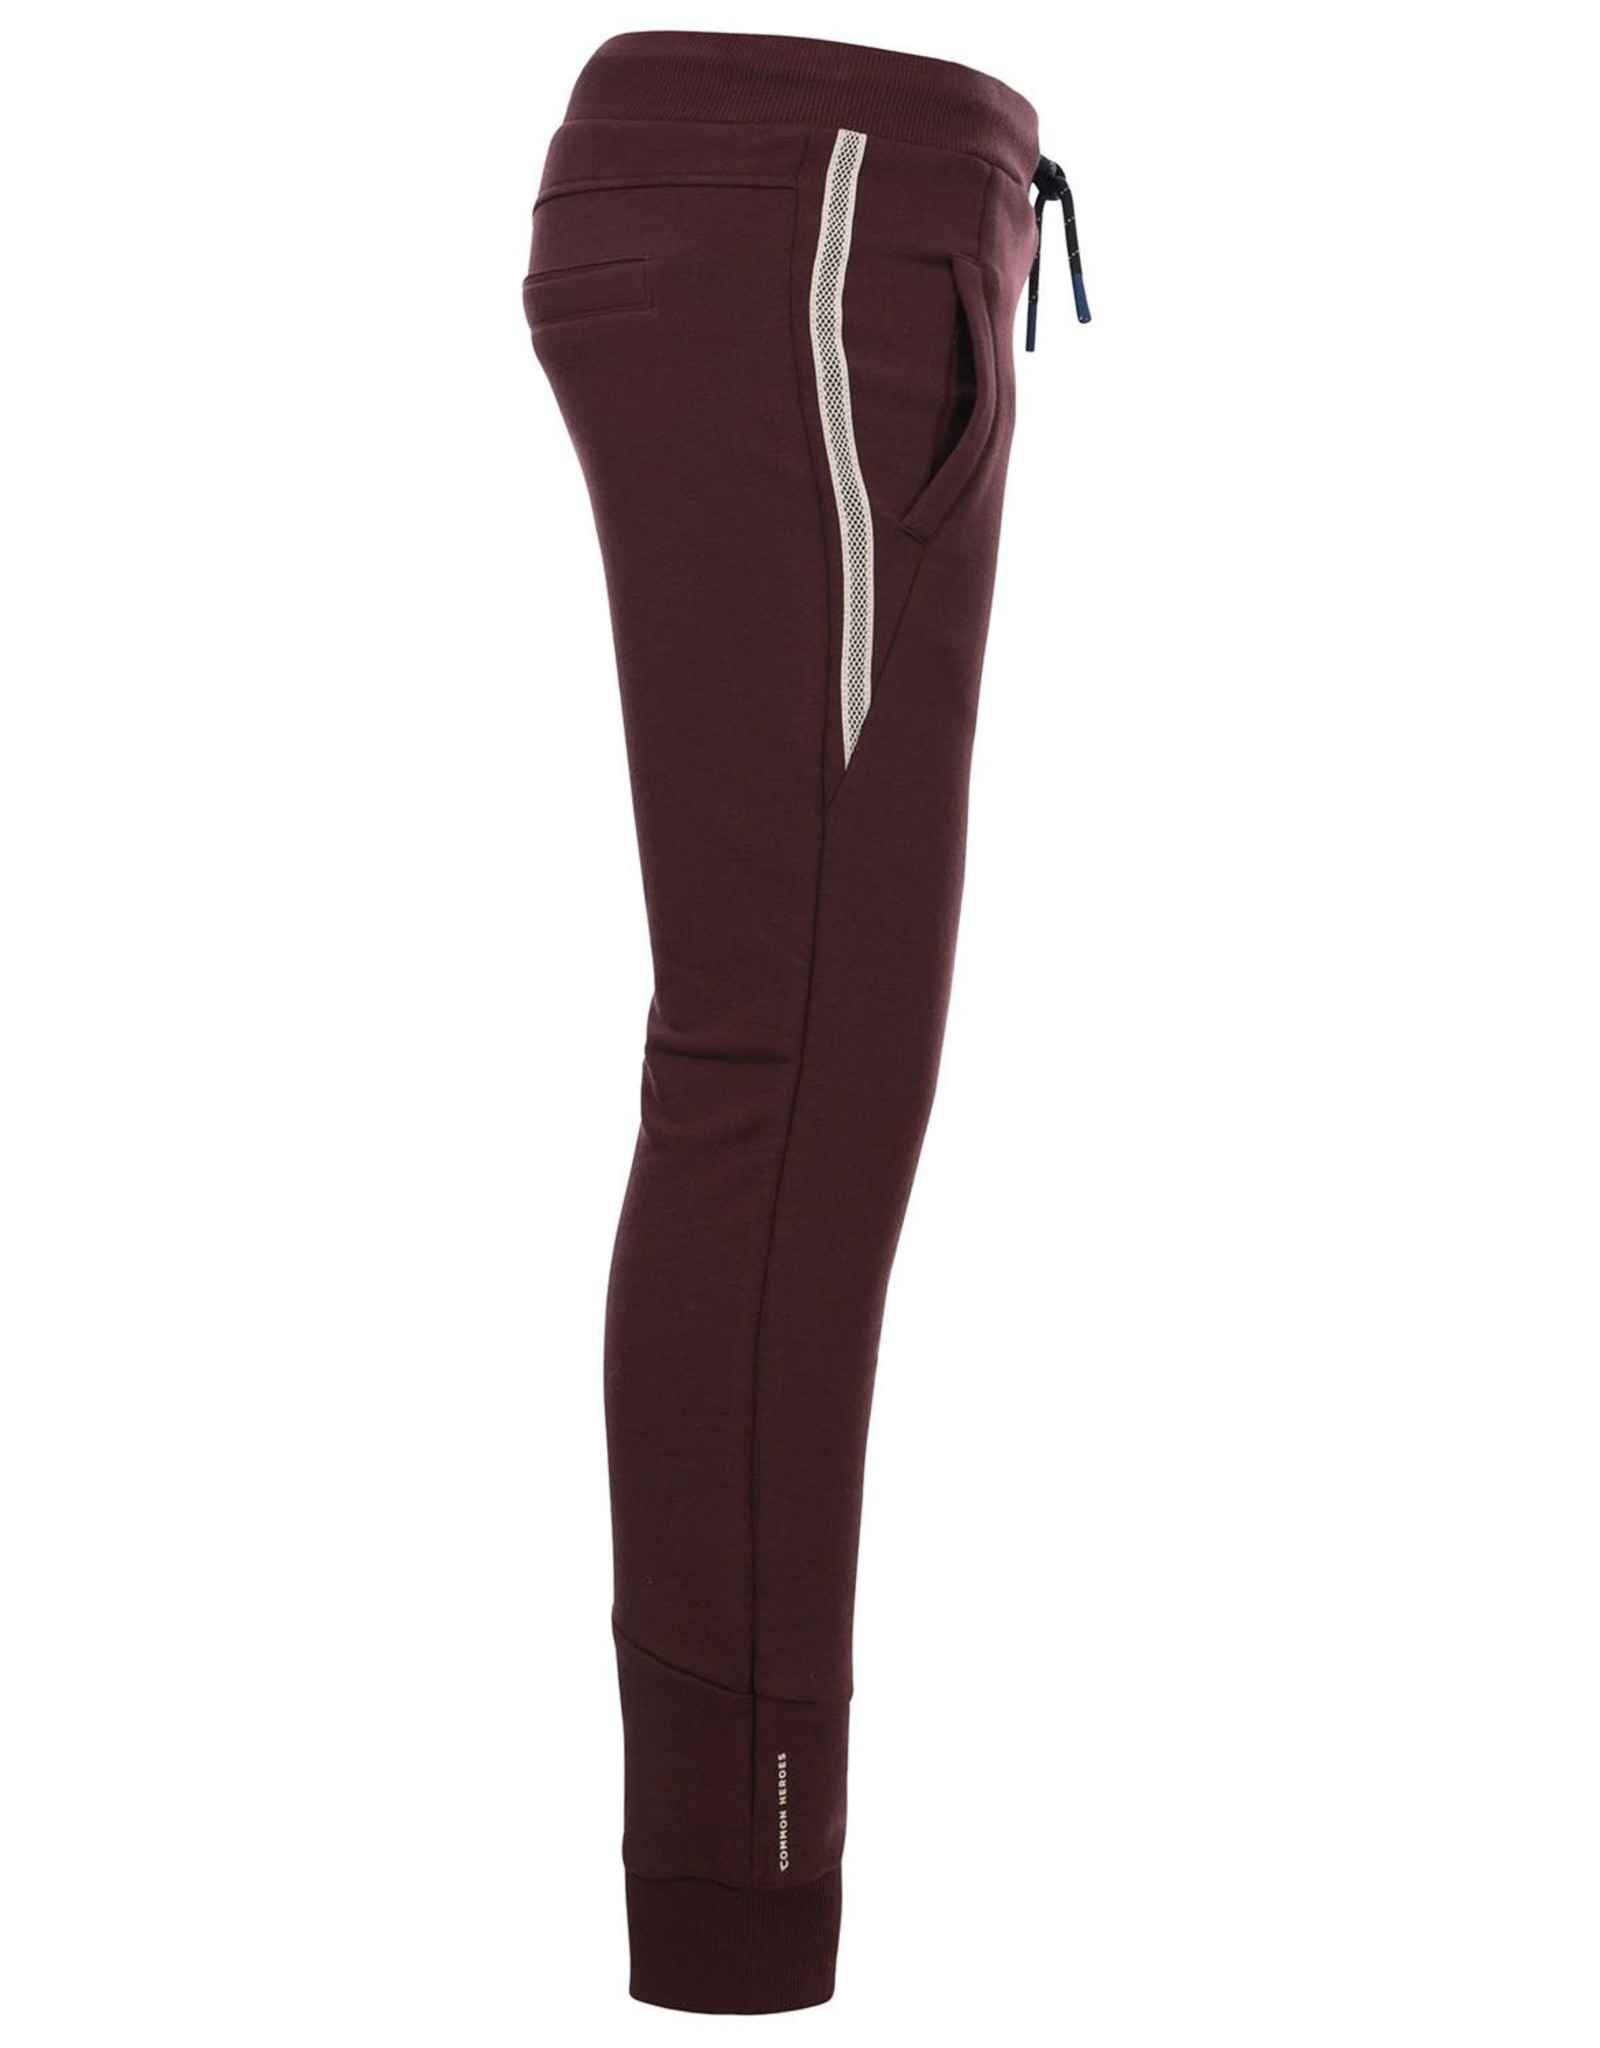 Common Heroes BOBBY sporty sweat pants1